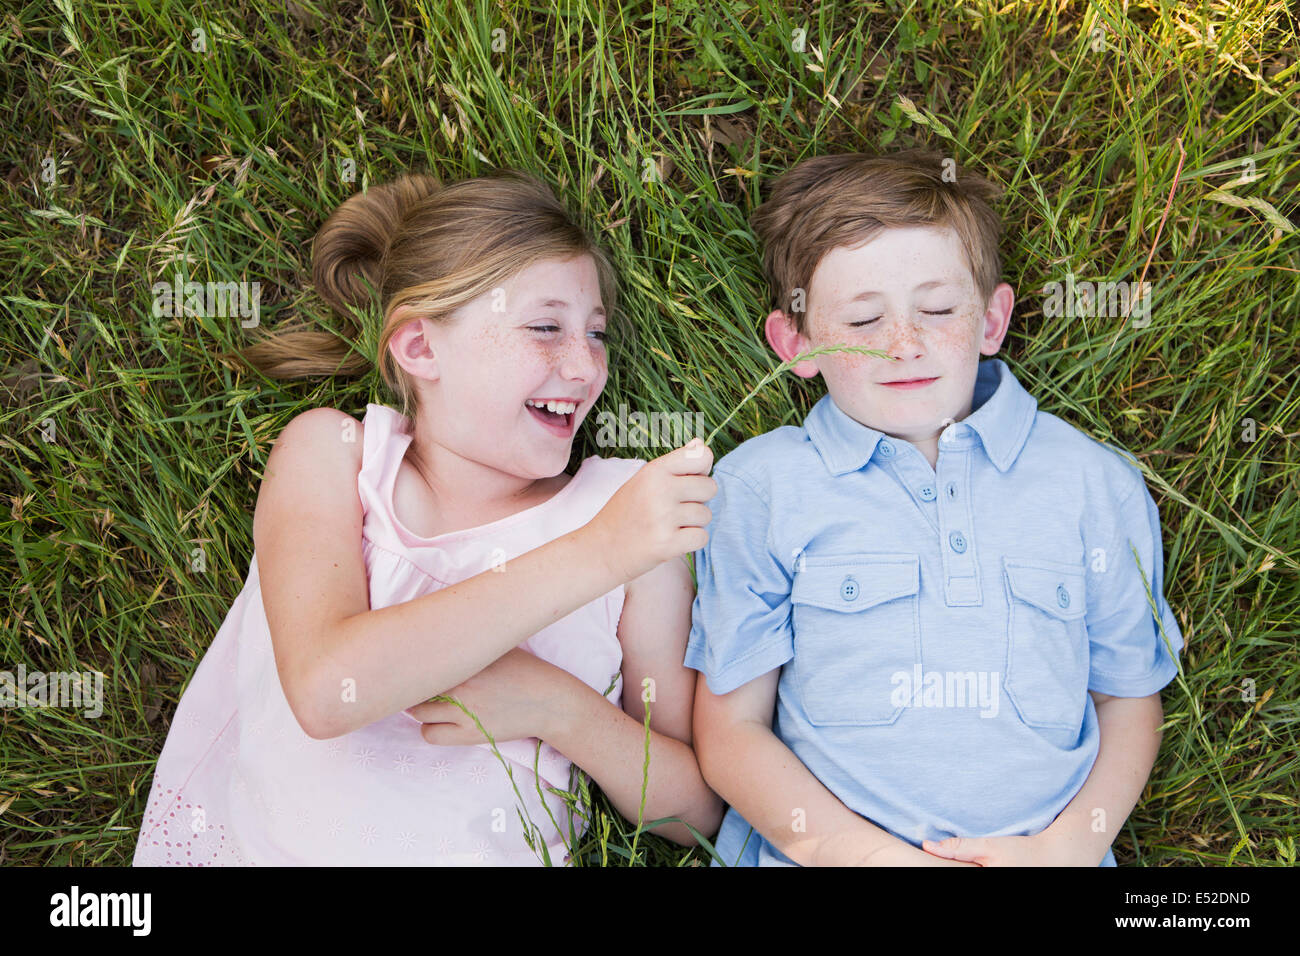 Two children, brother and sister lying side by side on the grass - Stock Image